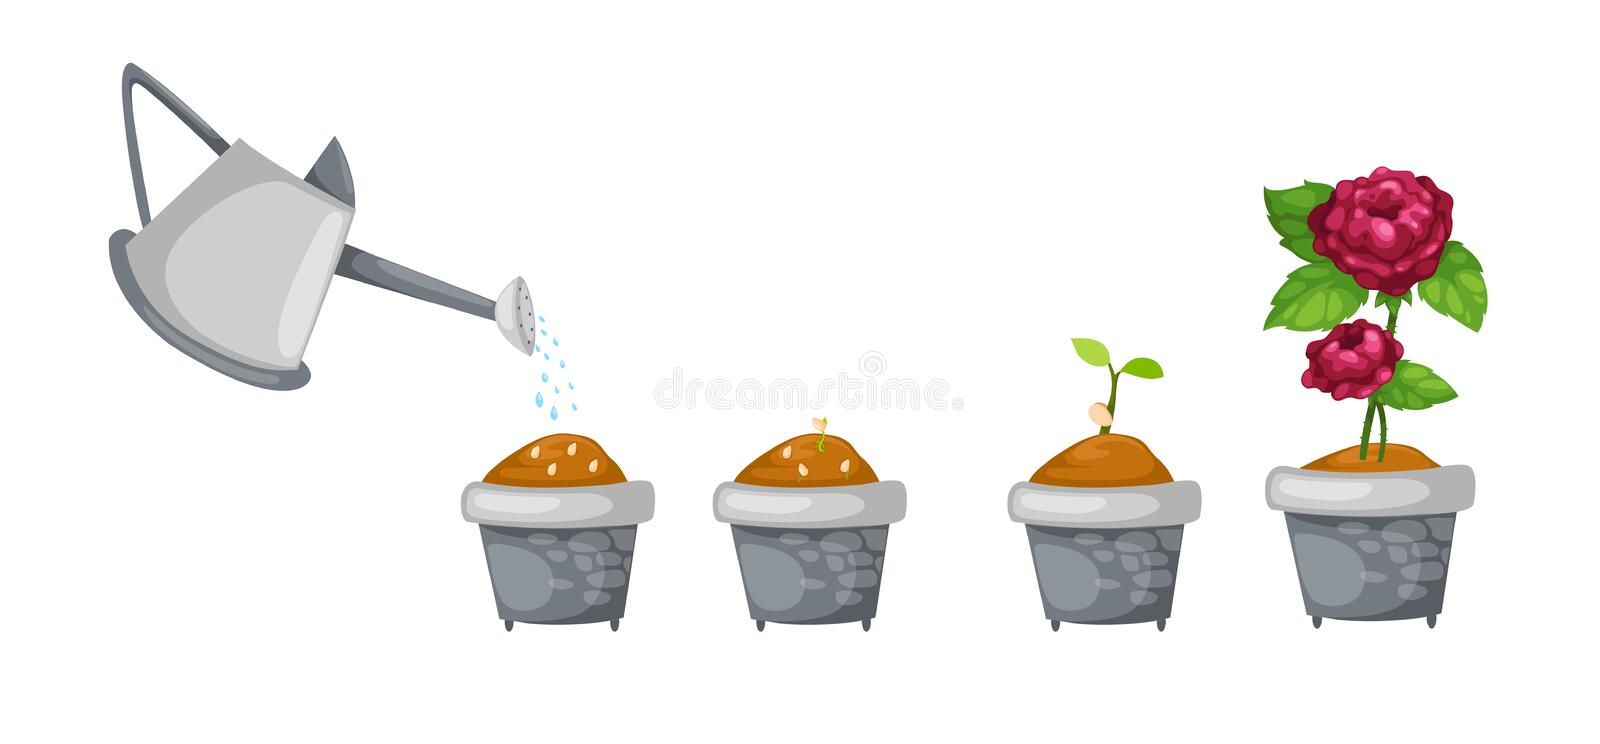 Watering can with rose life cycle vector stock illustration